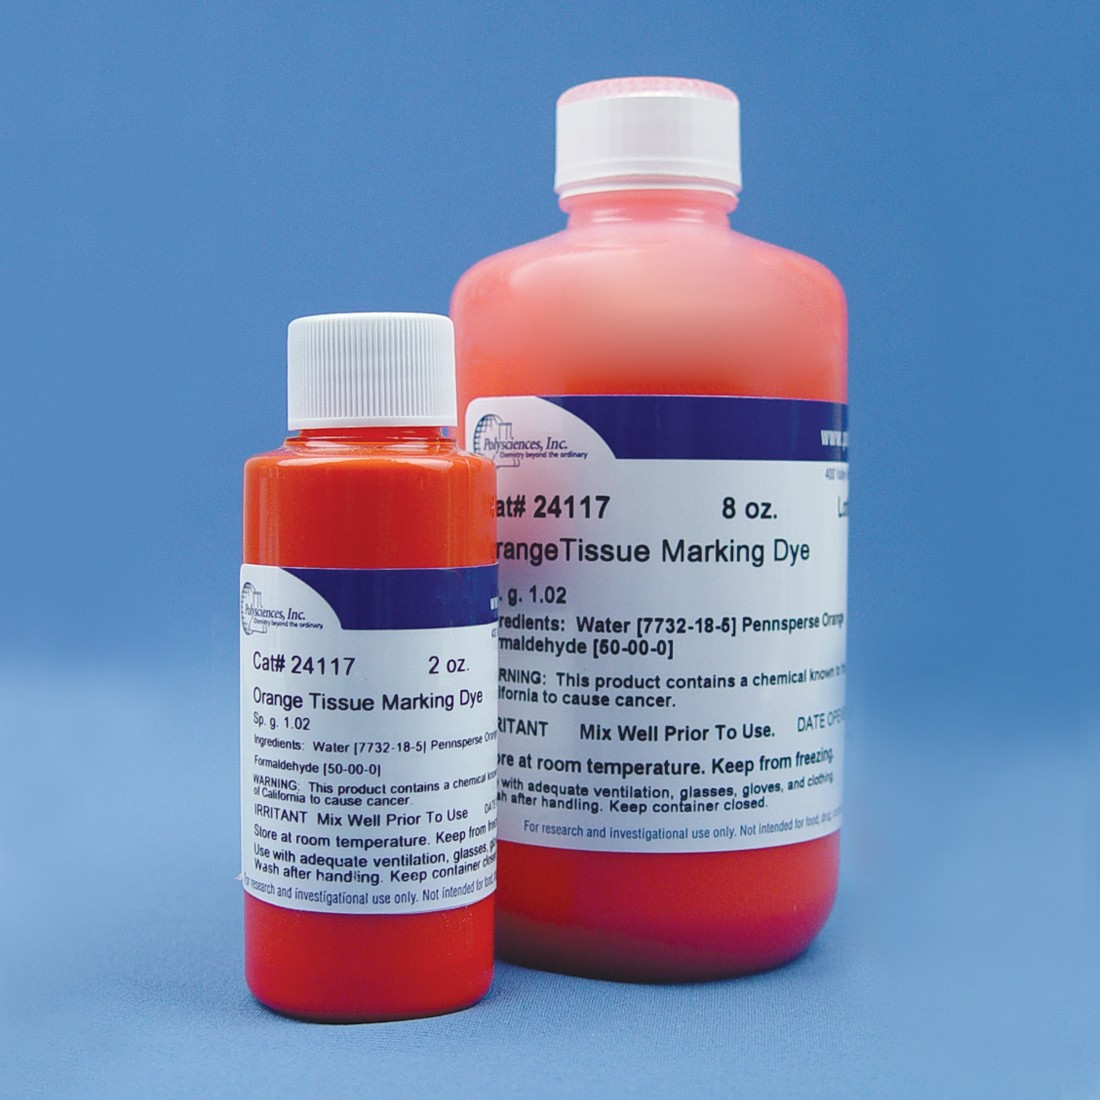 Marking Dye for Tissue - Orange